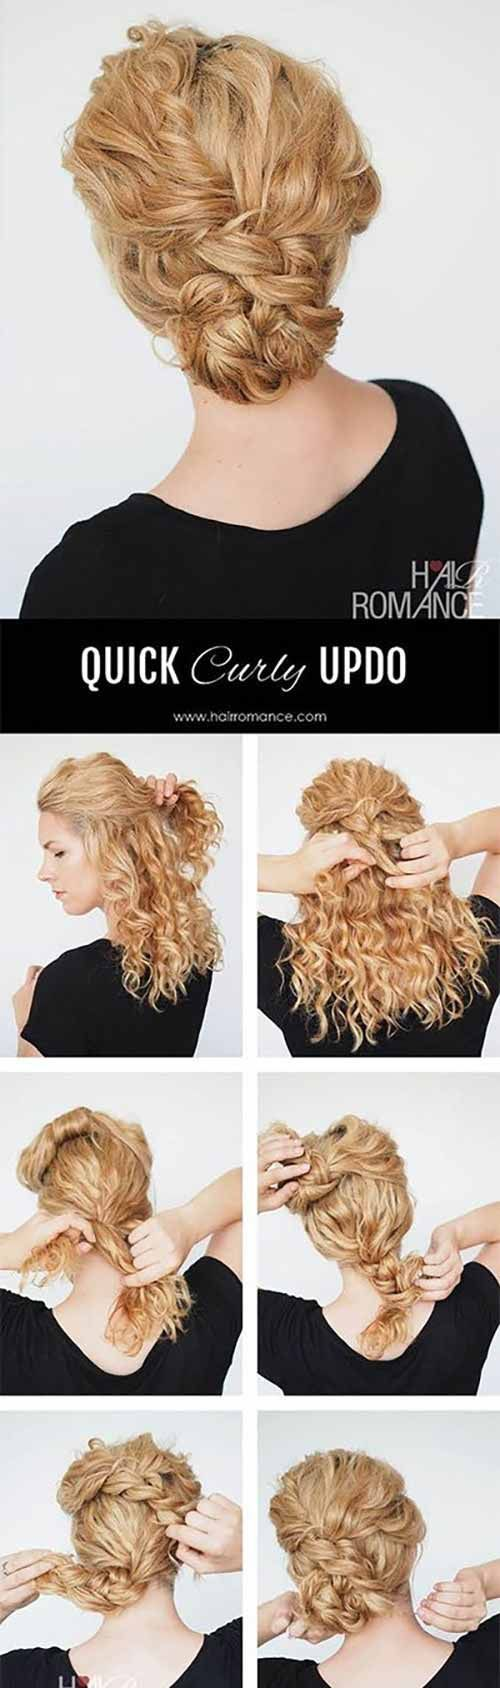 20 Incredibly Stunning DIY Updos For Curly Hair 20 Incredibly Stunning DIY Updos For Curly Hair - -